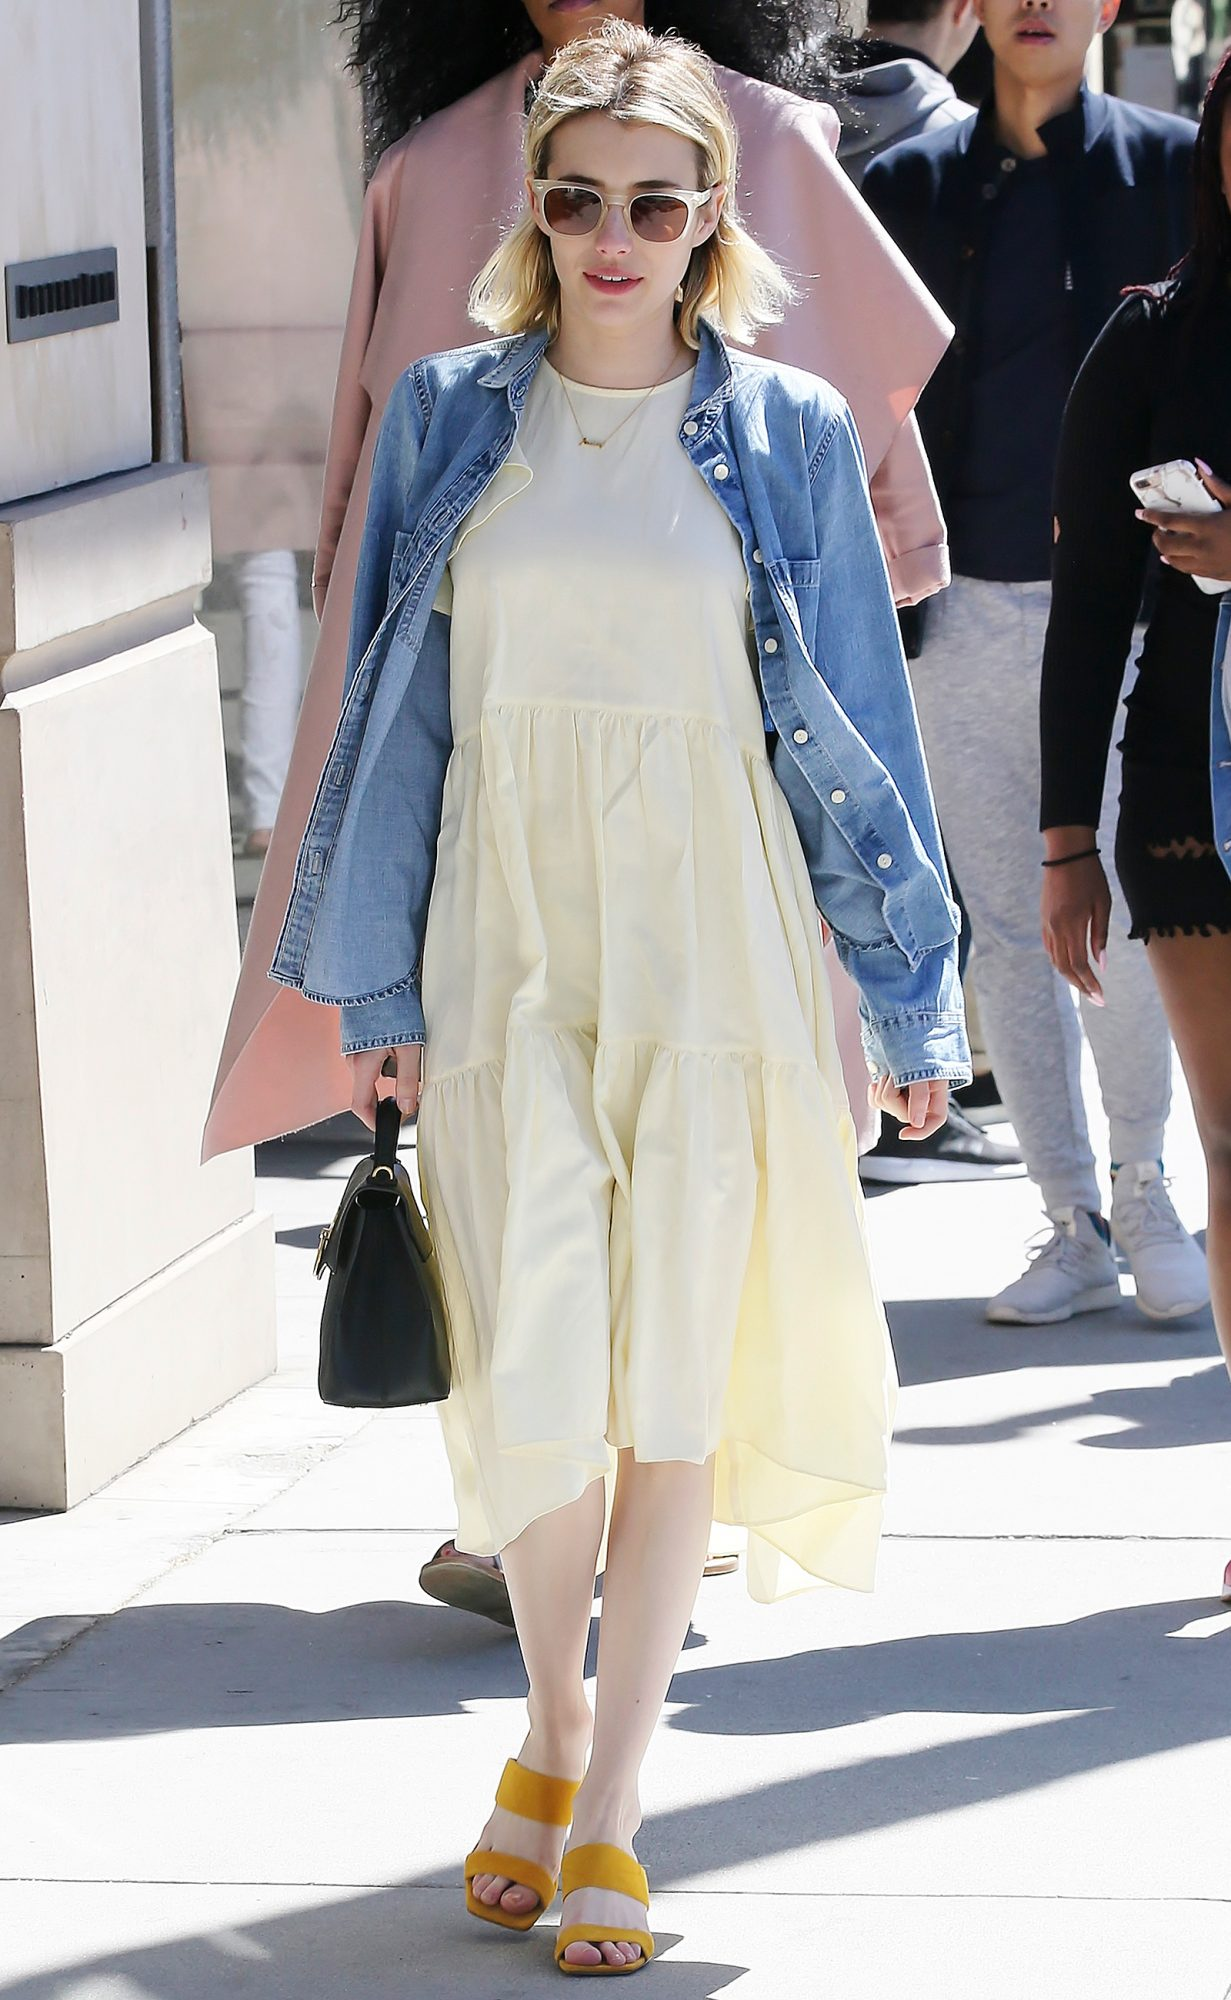 Emma Roberts goes shopping at Sandro in Beverly Hills, California